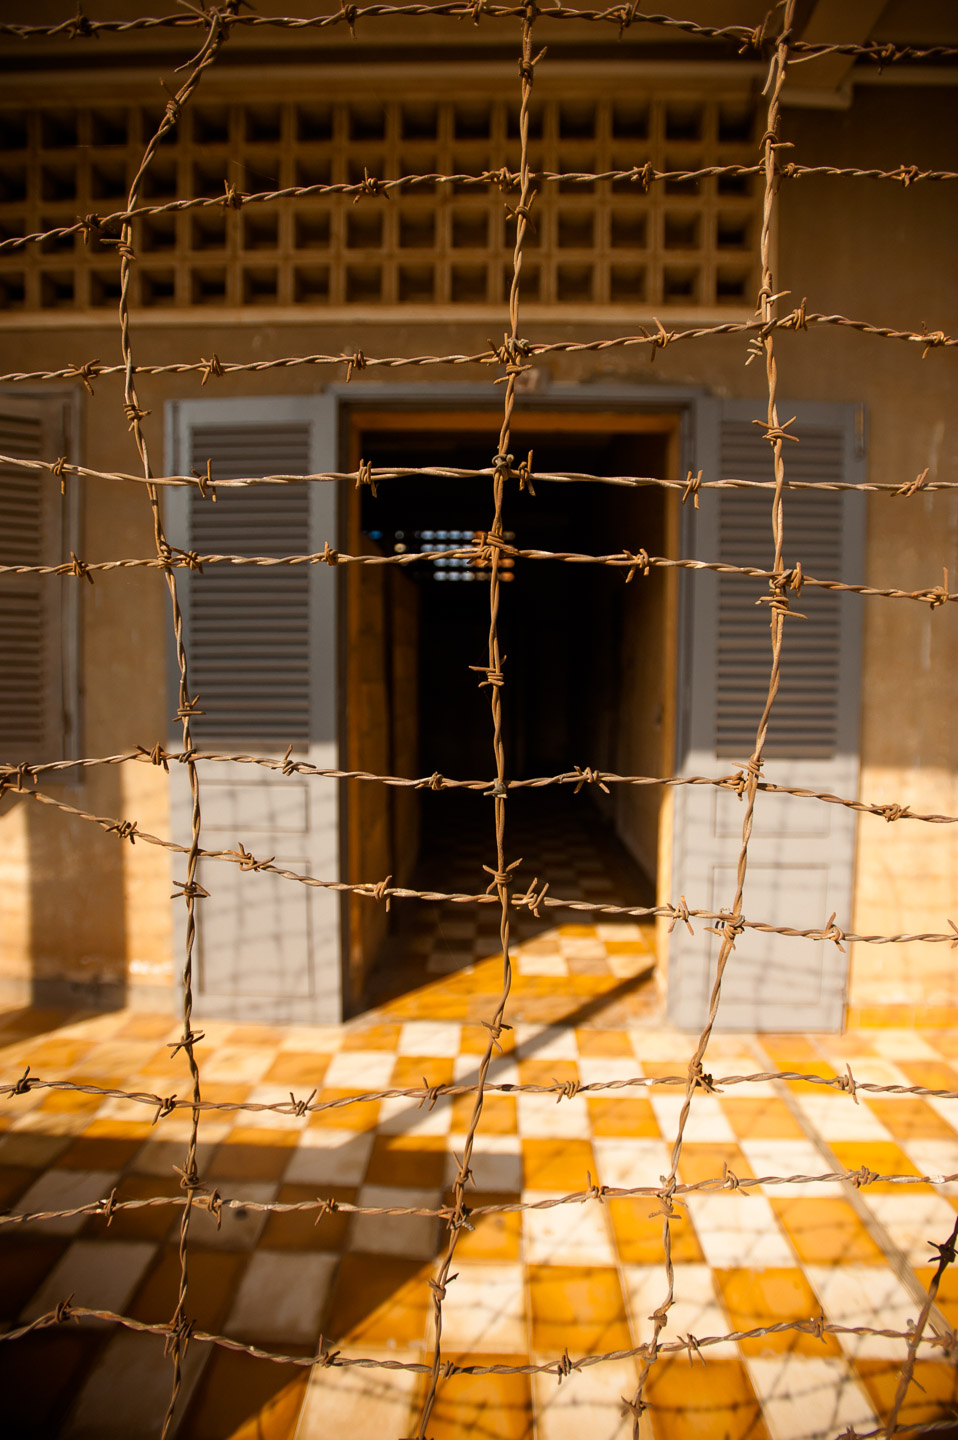 Barbed wire still wraps around some of the buildings used as cell blocks at former S-21 prison, now Tuol Sleng Genocide Museum in Phnom Penh, Cambodia, on December 6, 2013.  Copyright © 2013 Art Zaratsyan